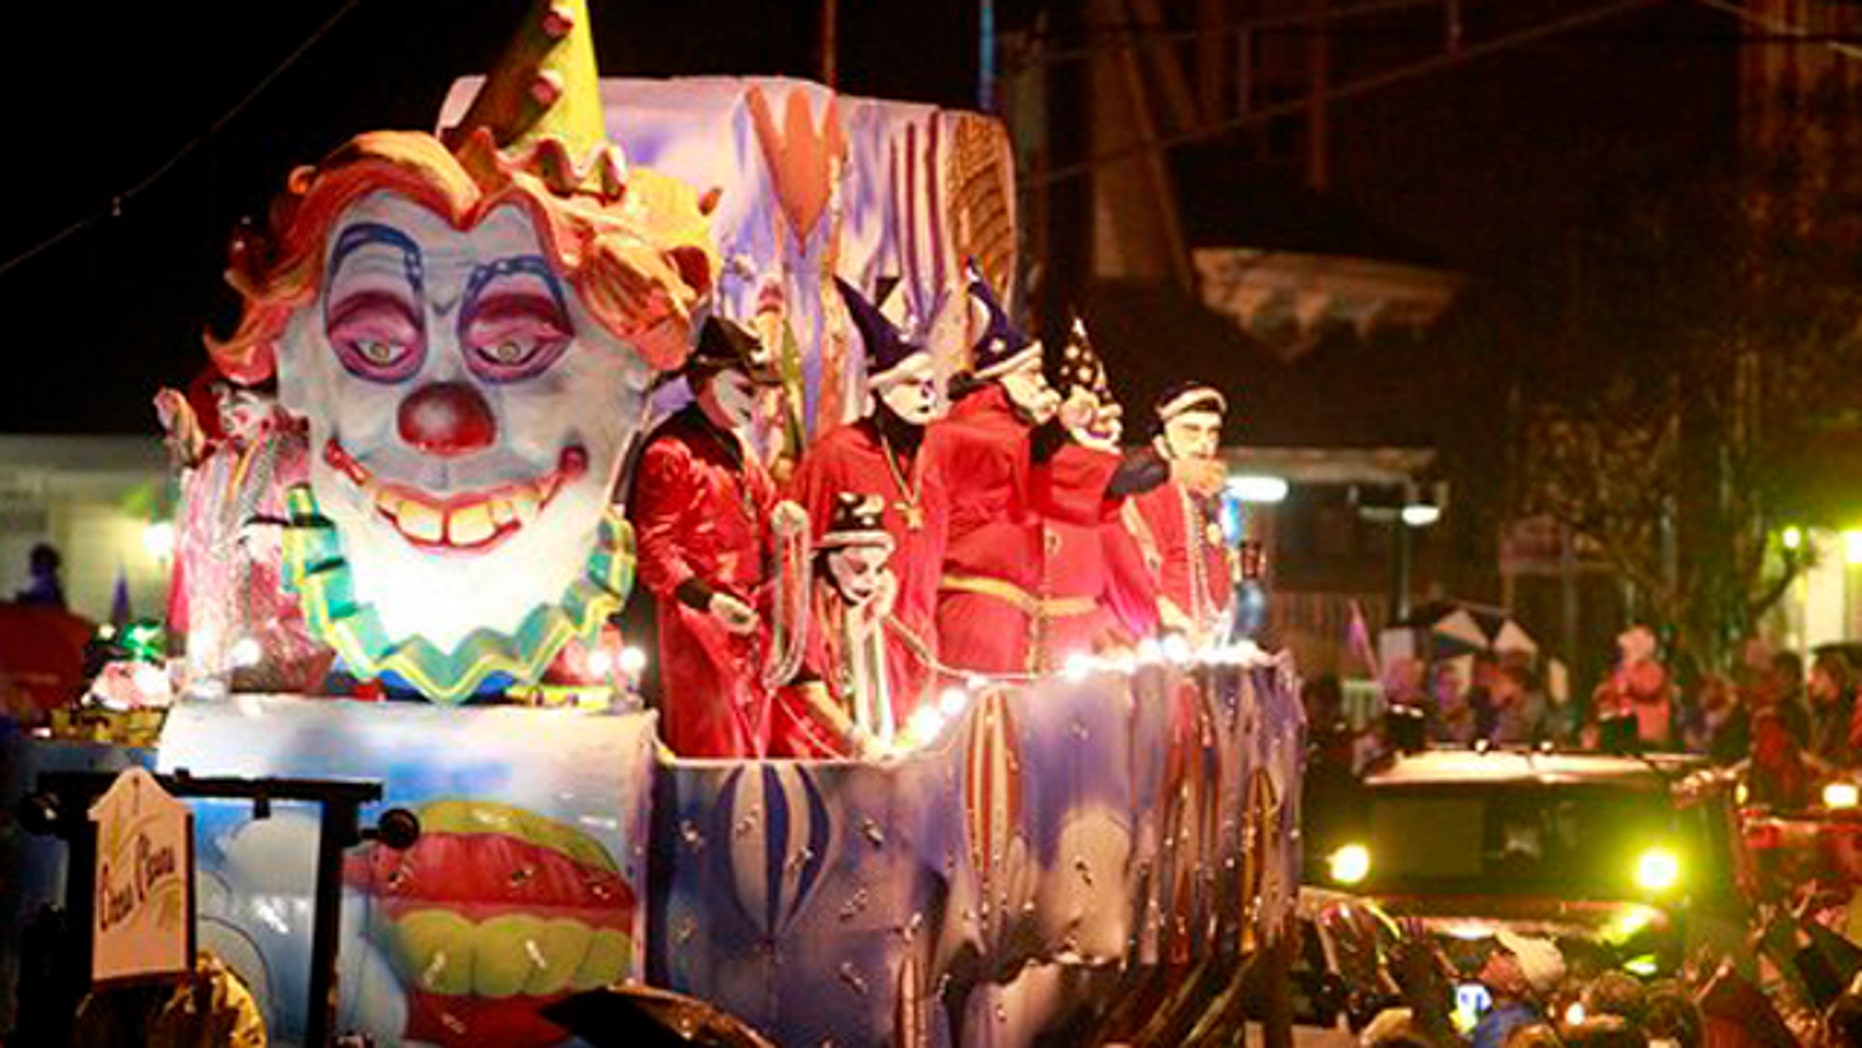 Feb. 15, 2012: The Ancient Krewe of  Druids parade rolls down Magazine Street in New Orleans.